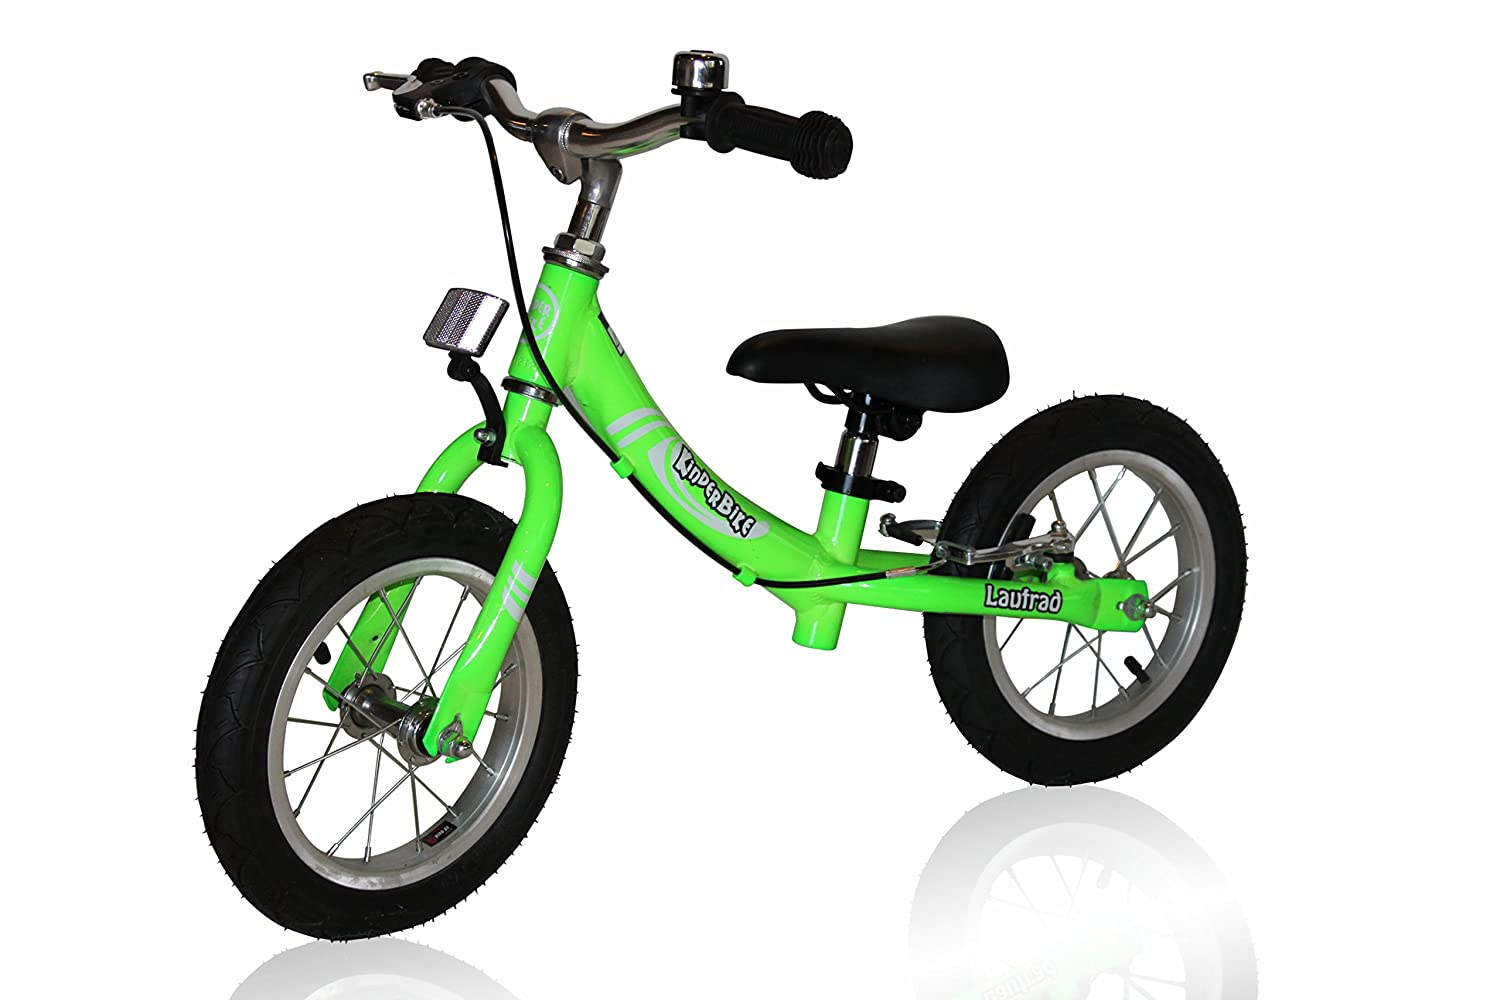 Kinderbike Laufrad 2014 Bike Green Sports Outdoors